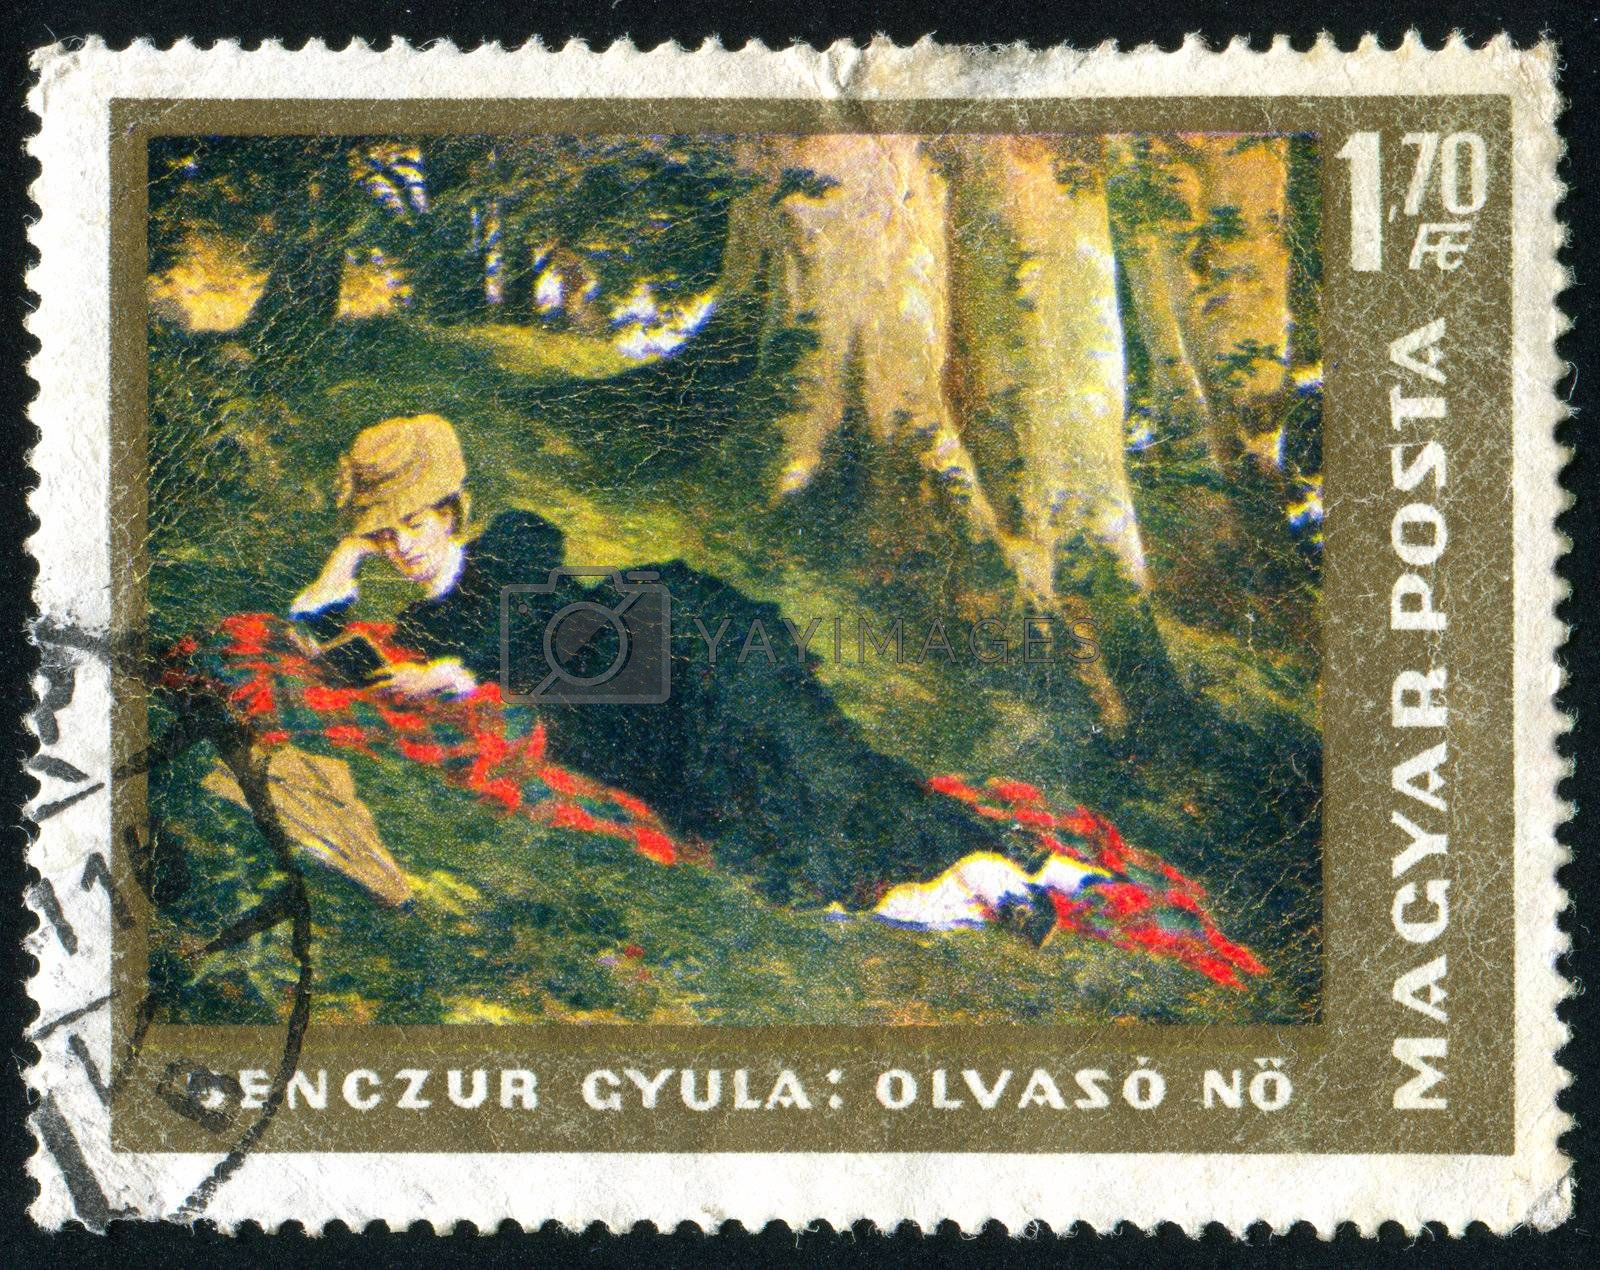 HUNGARY - CIRCA 1966: stamp printed by Hungary, shows Reading Woman by Gyula Benczur, circa 1966